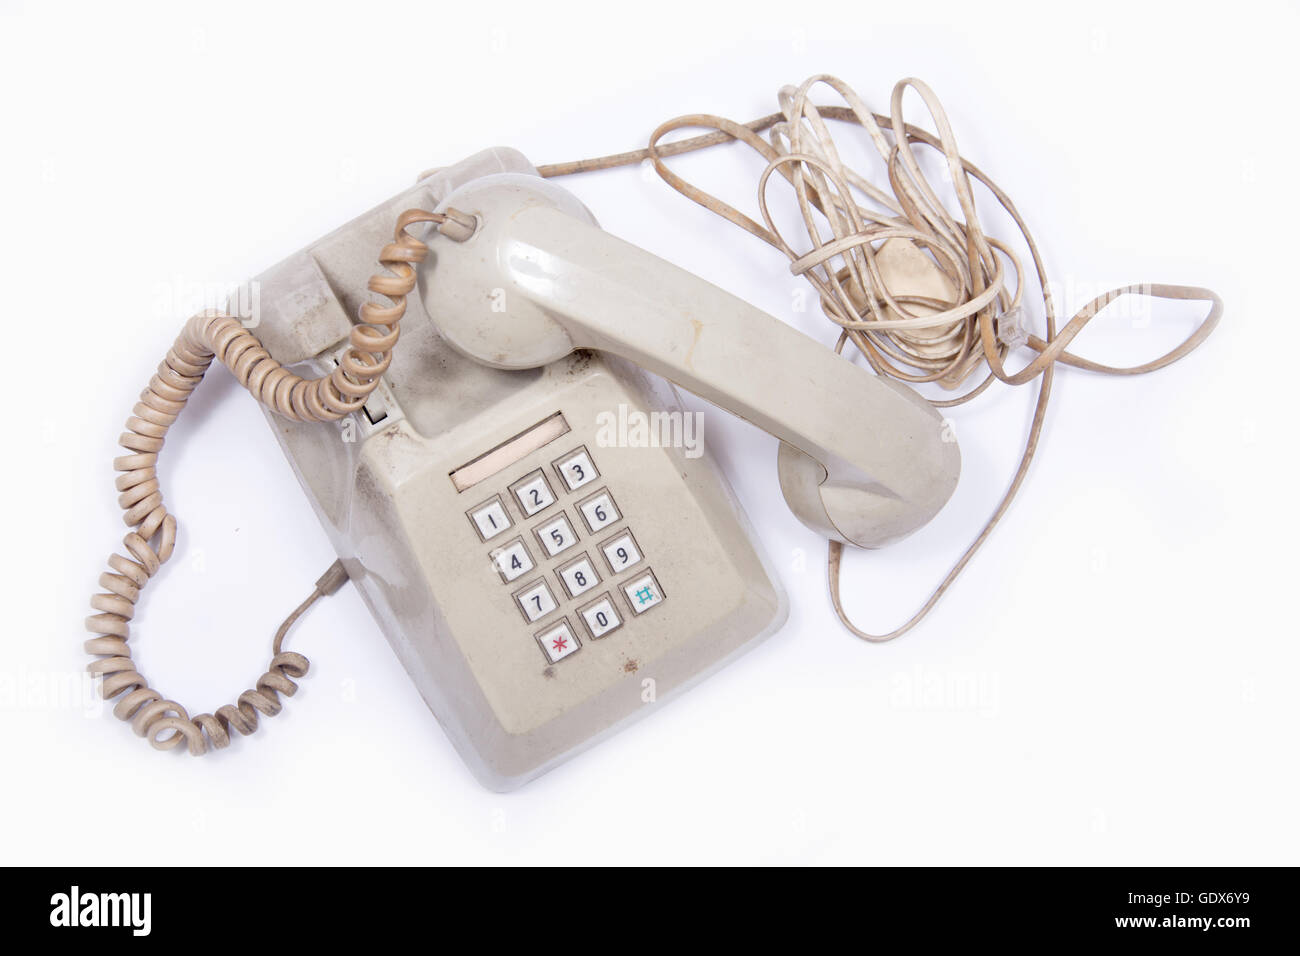 House Call Cut Out Stock Images Pictures Alamy Gdx Intercom Wiring Diagram Vintage Old Use Telephone Image